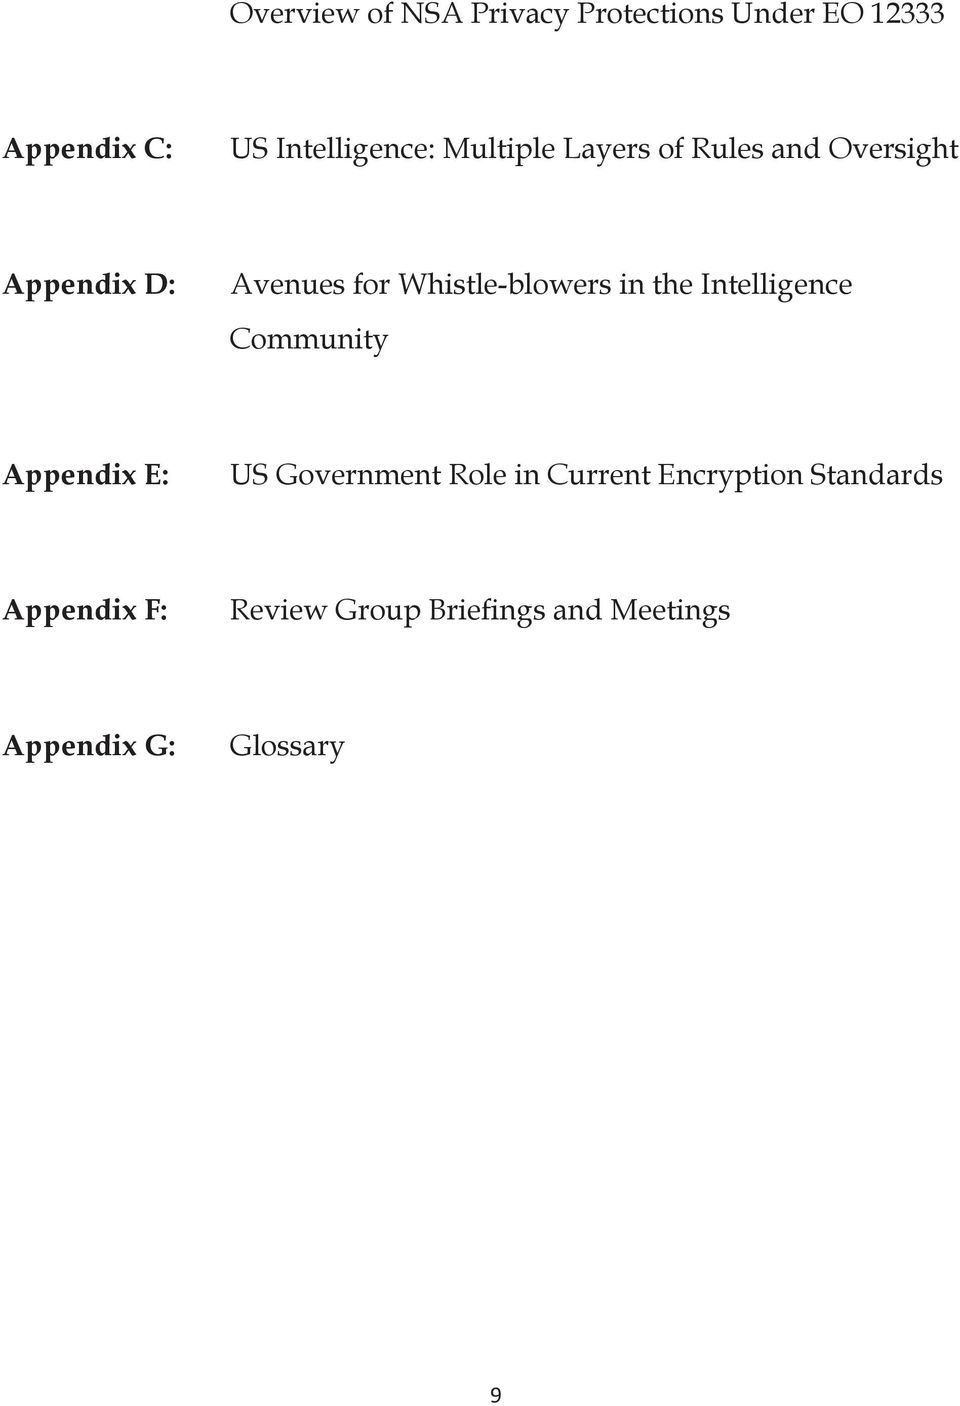 in the Intelligence Community Appendix E: US Government Role in Current